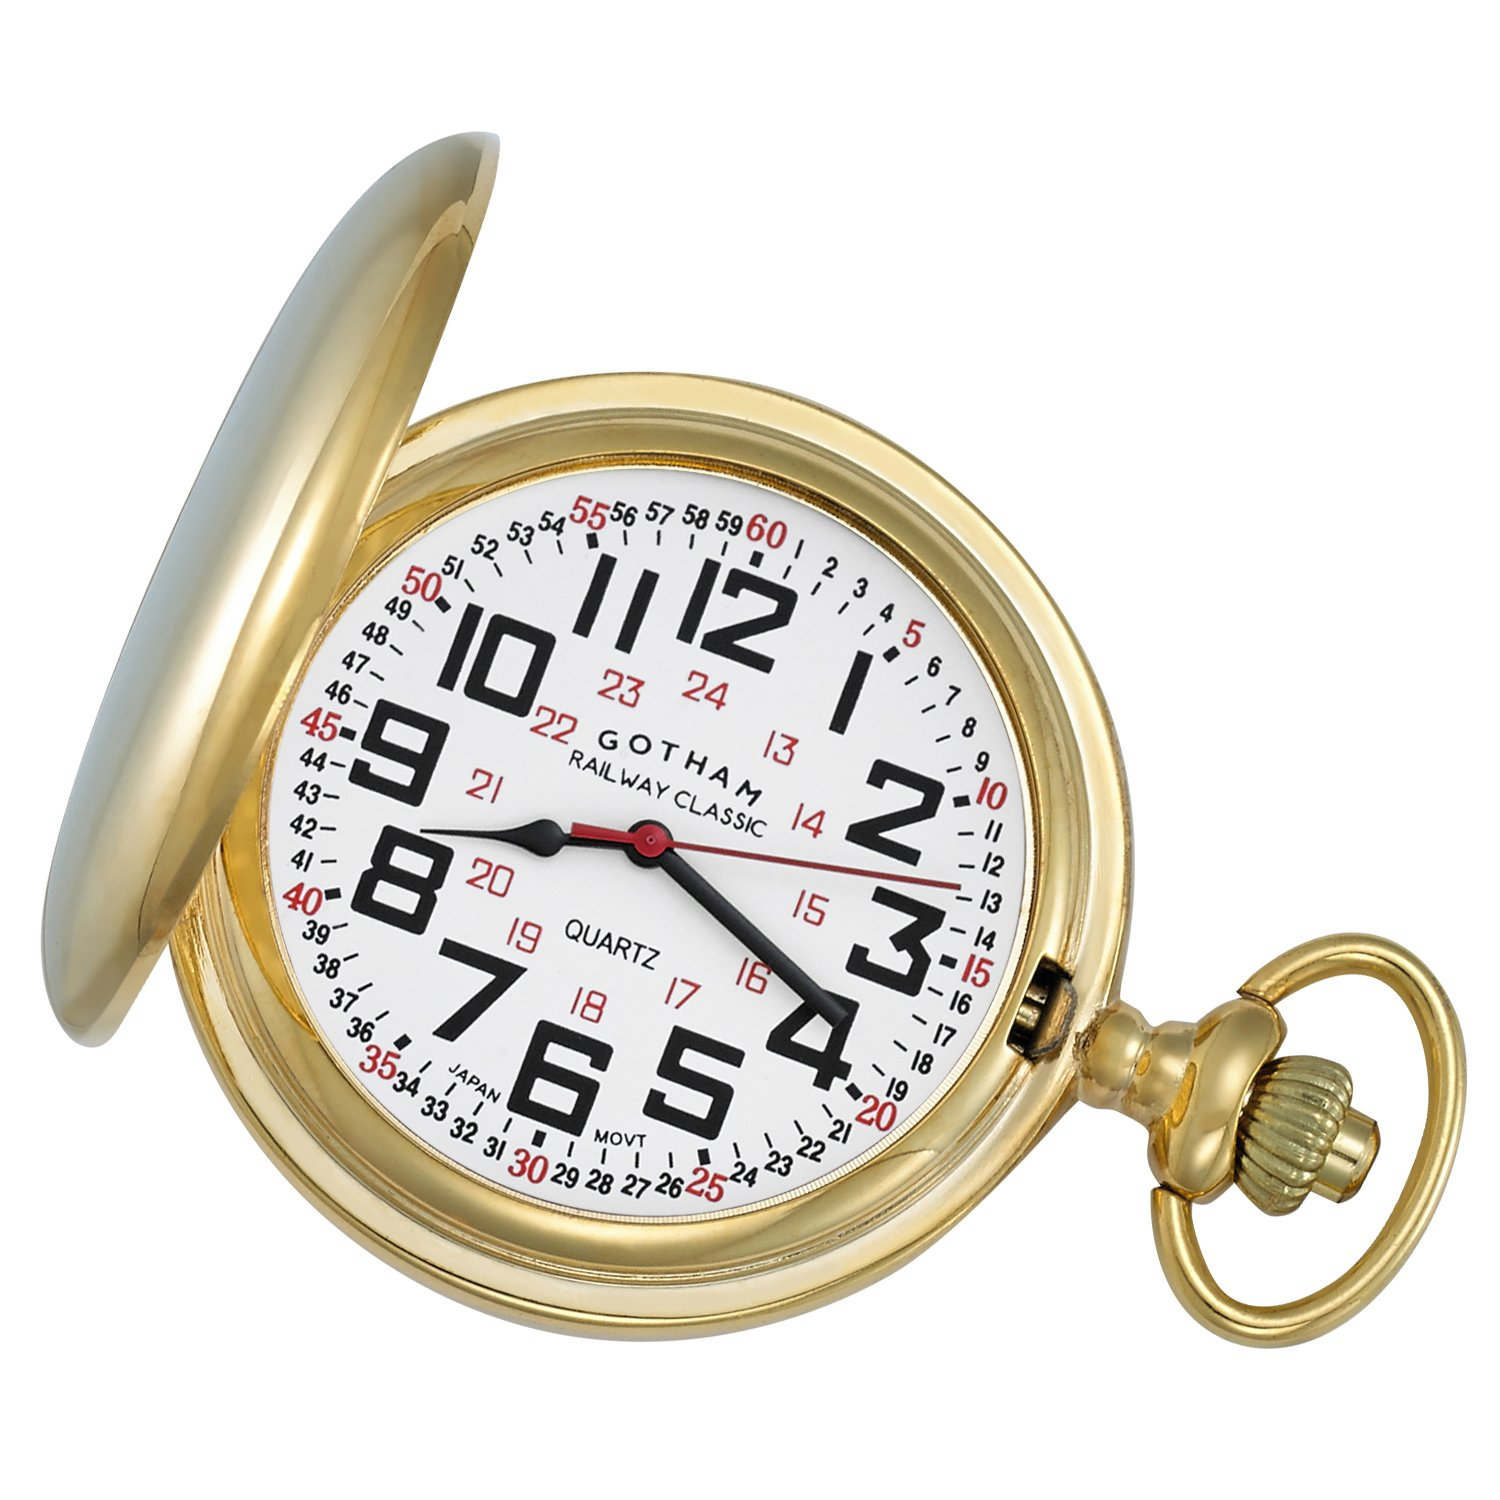 Gotham Men's Gold-Tone Railroad Polished Finish Covered Quartz Pocket Watch # GWC15044G